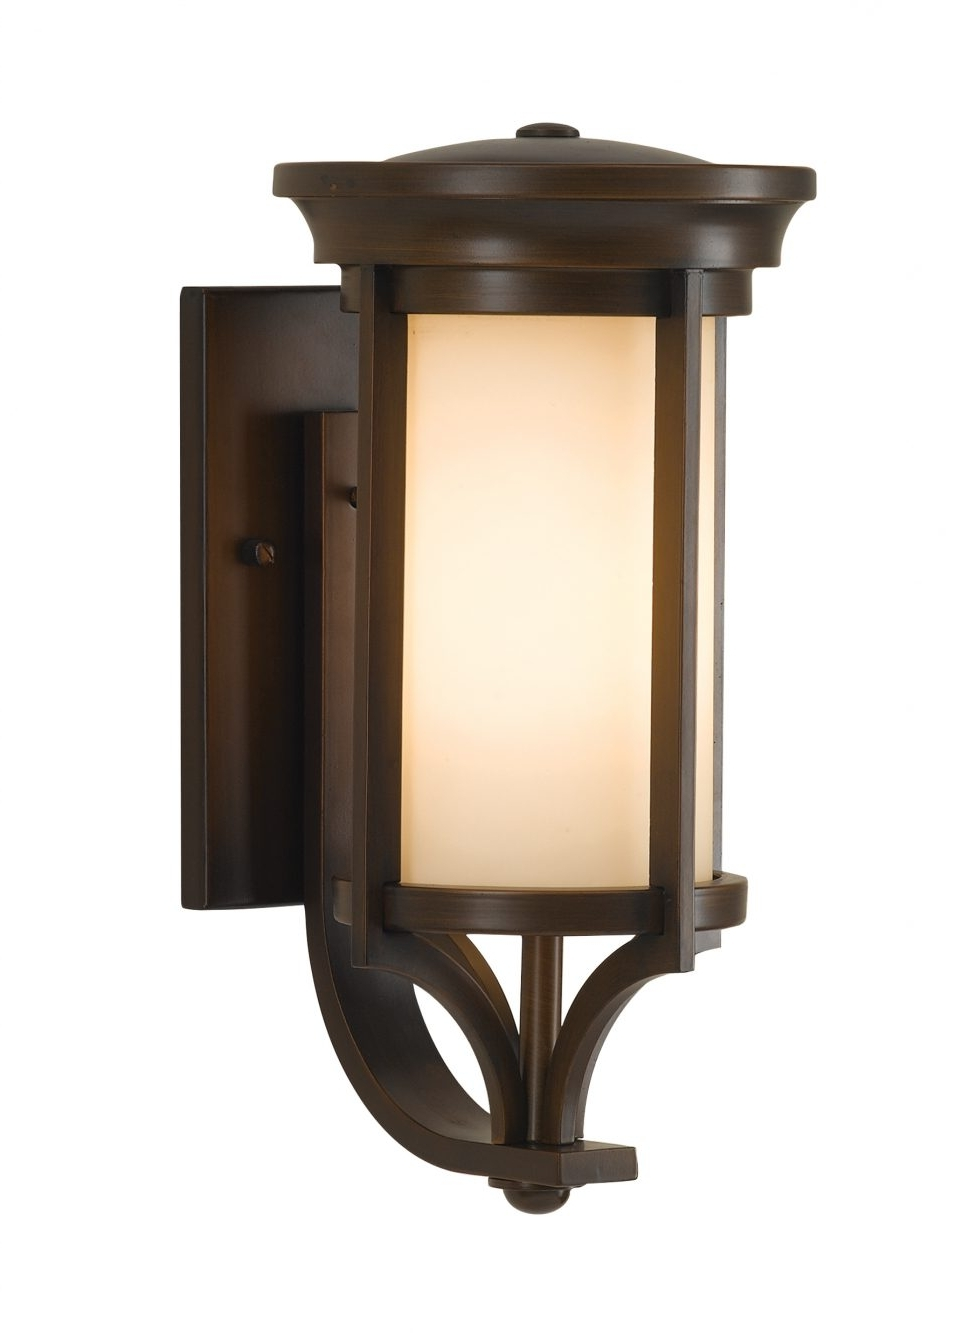 Well Known Outdoor Ceiling Light With Outlet Regarding Electrical Wiring : Guiding Outdoor Ceiling Light Fixture With (View 19 of 20)